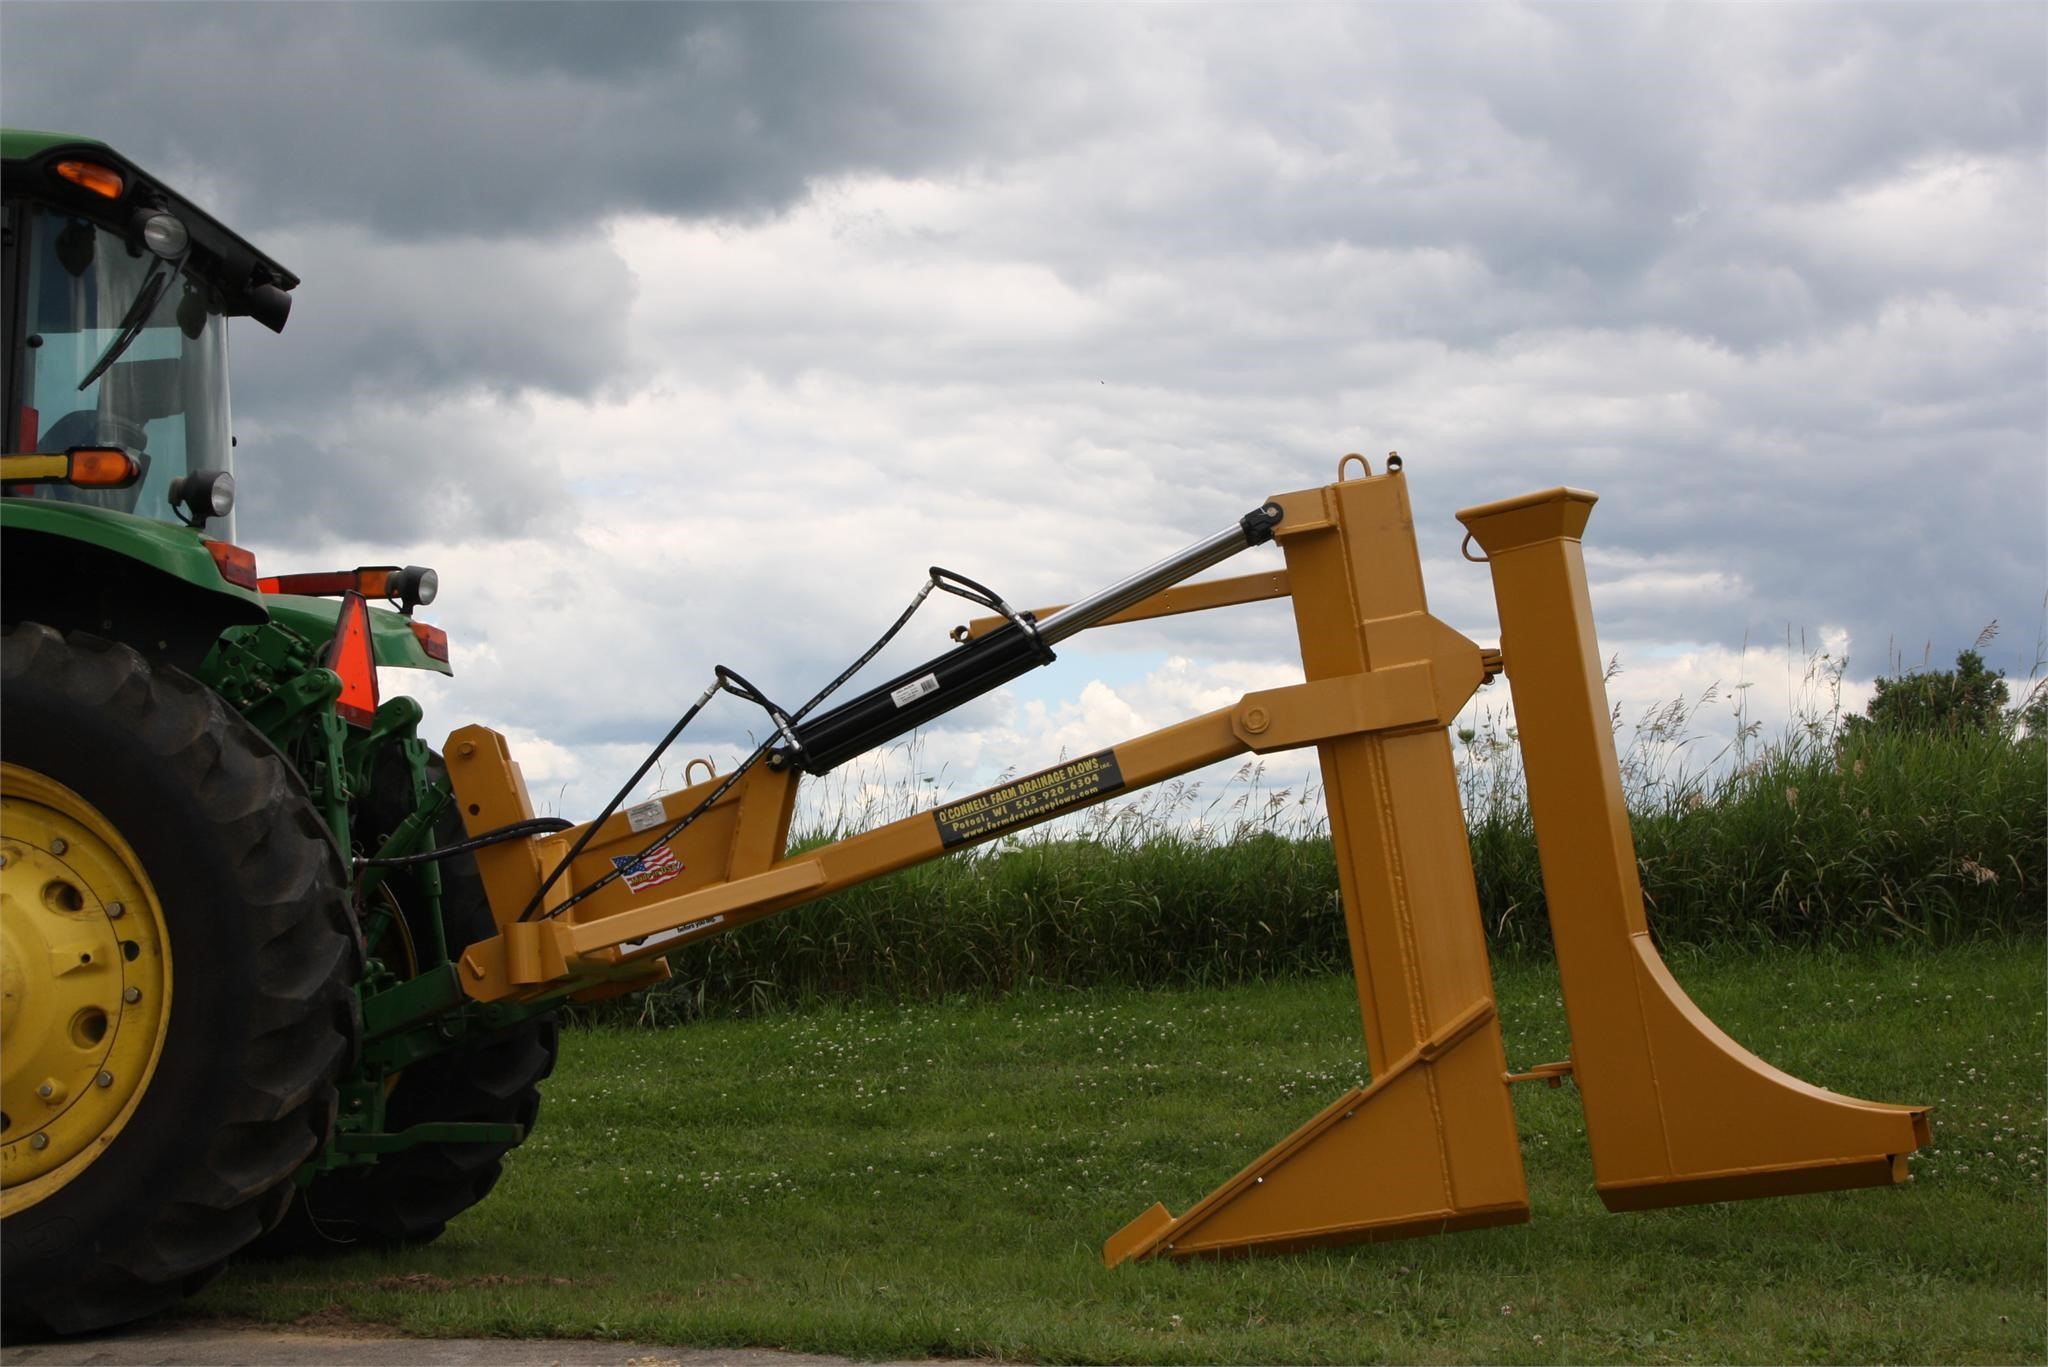 O'CONNELL FARM DRAINAGE PLOWS INC OFDP453PT Field Drainage Equipment